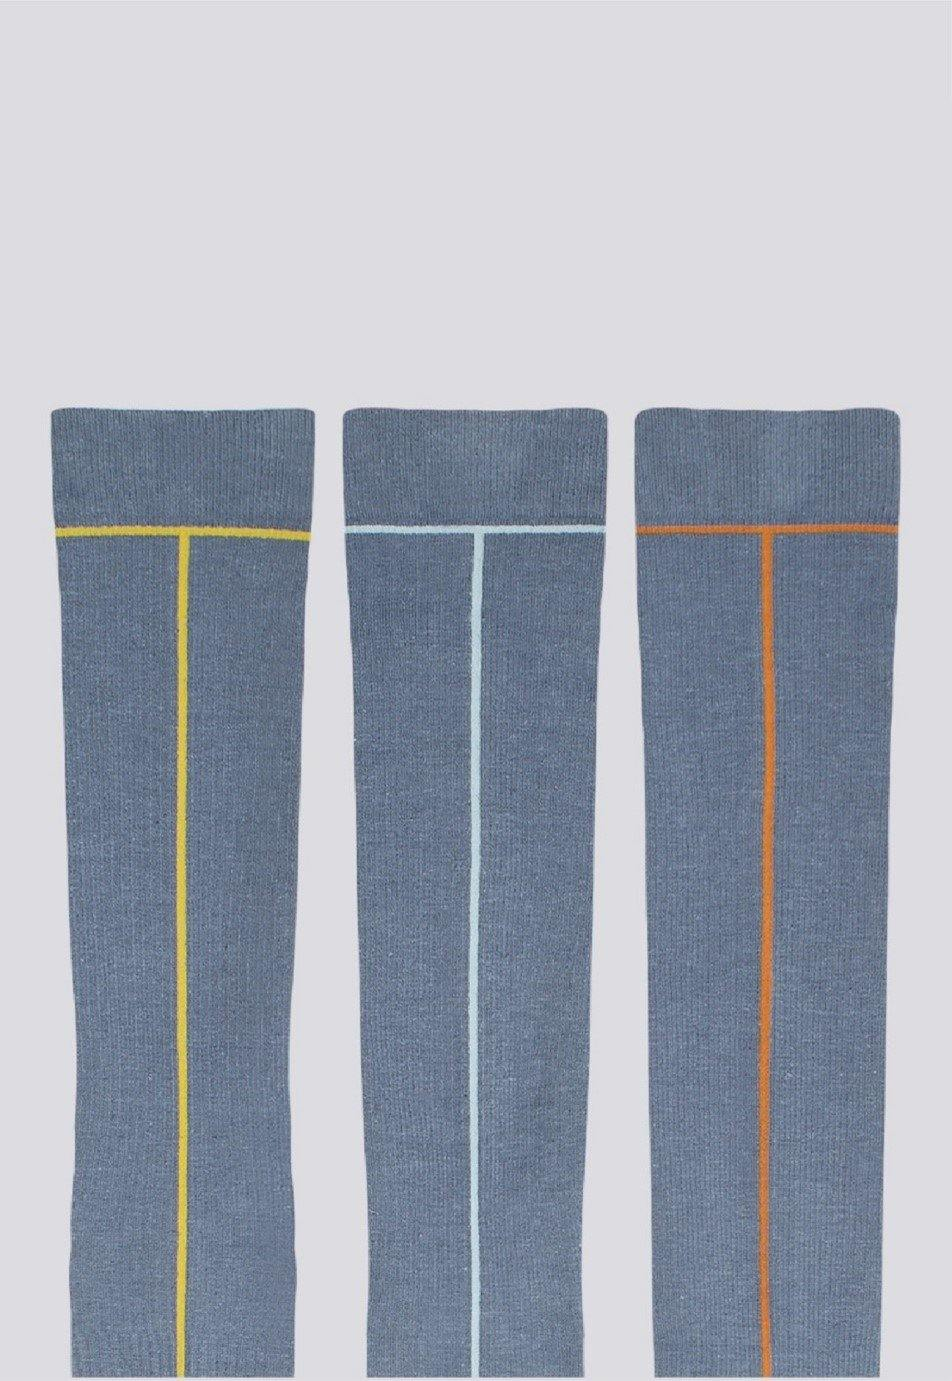 Graduated Hemp Compression Socks - Sea Angel - LockrSpace